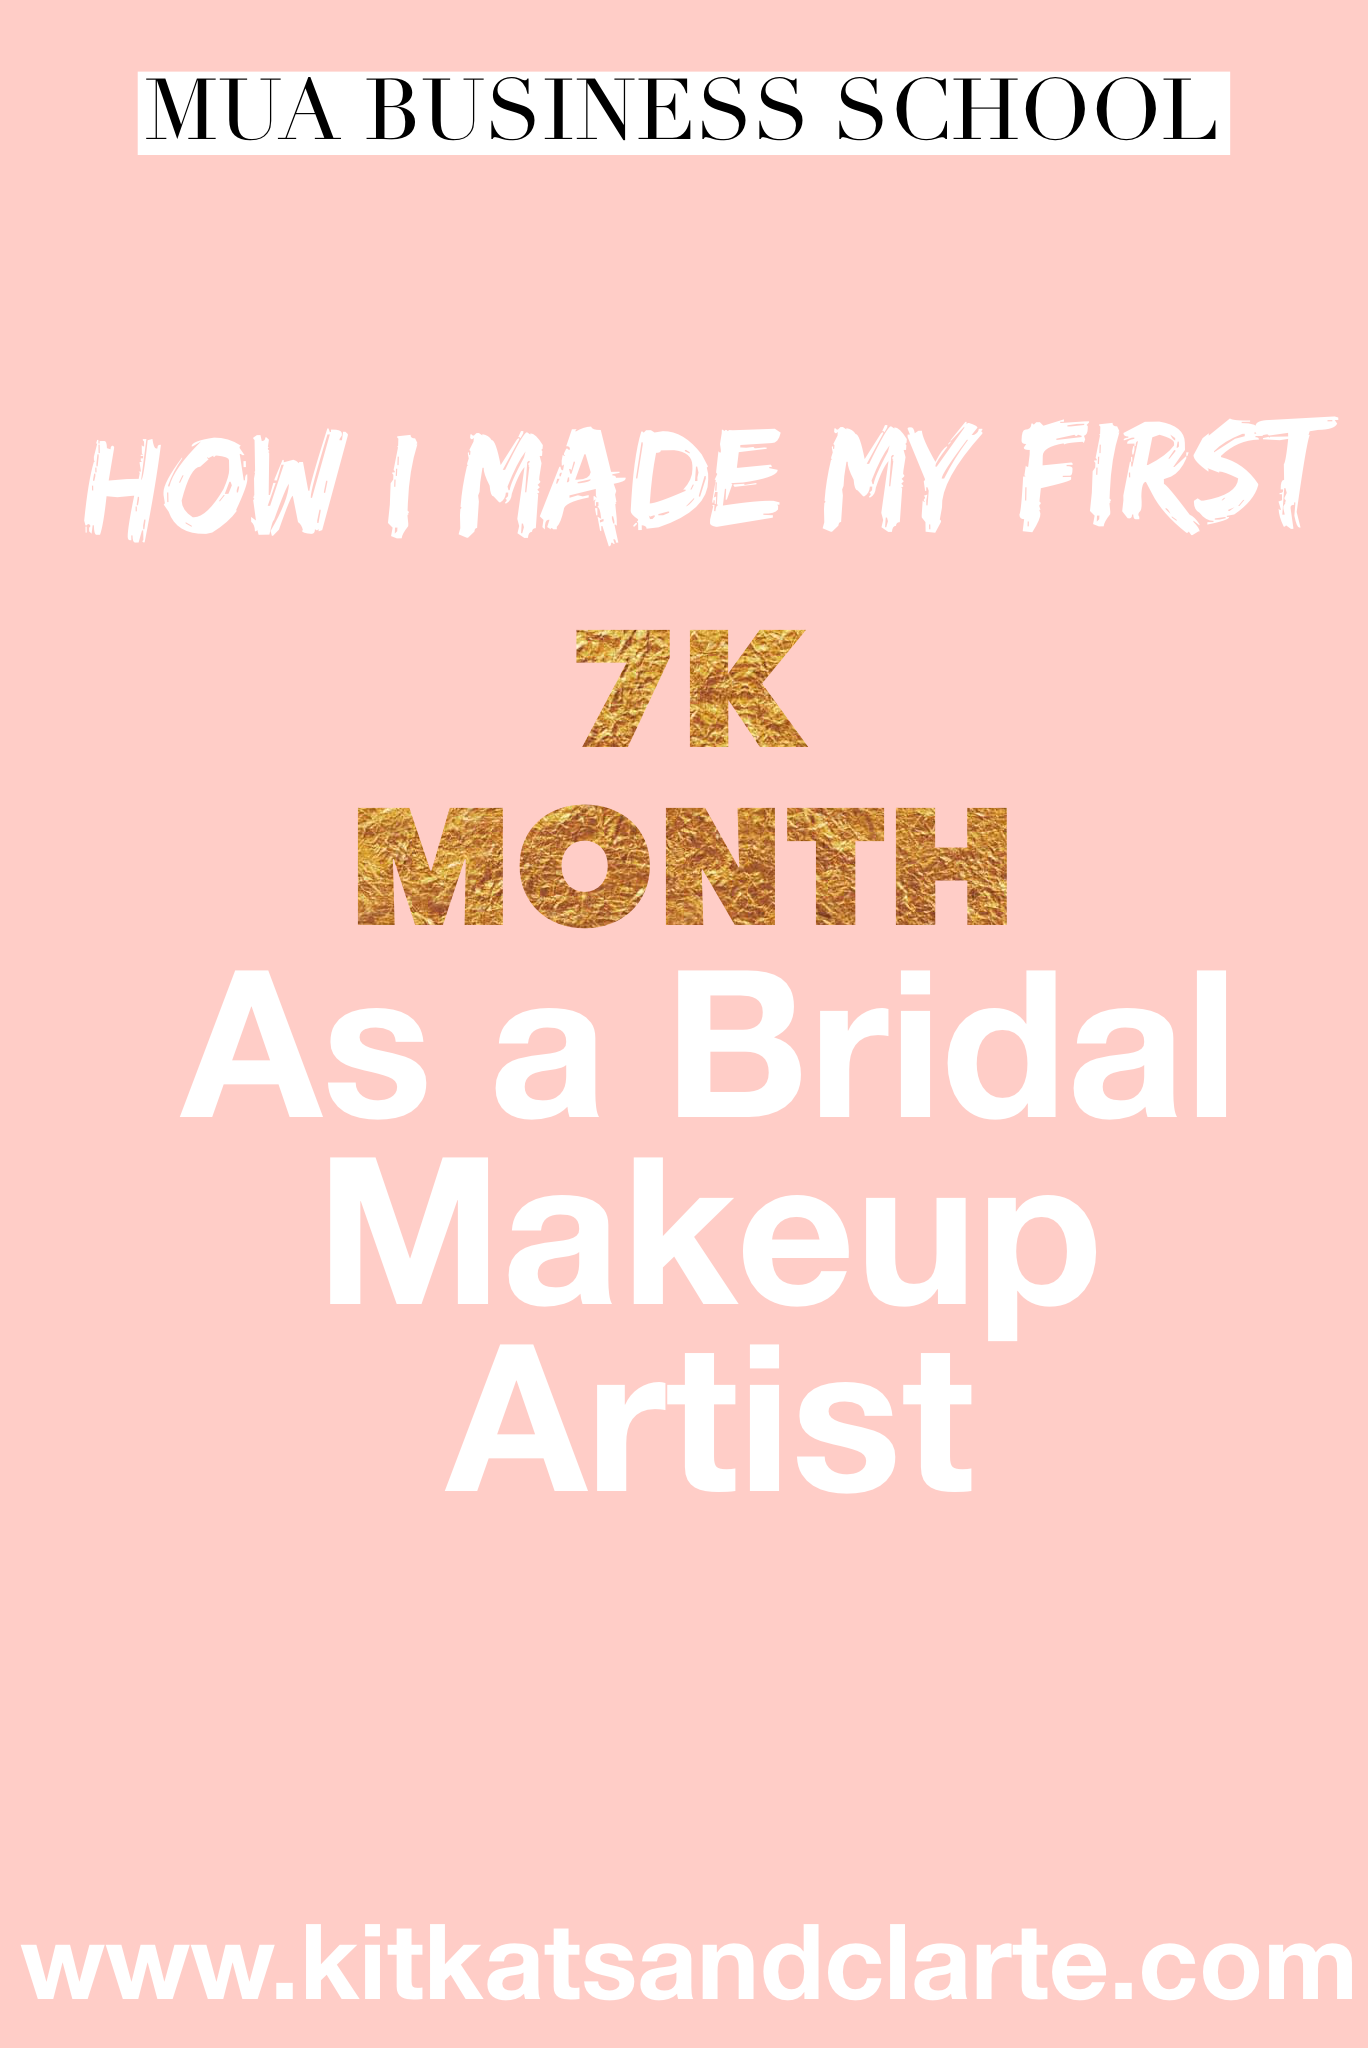 How's to start a business as a bridal makeup artist with